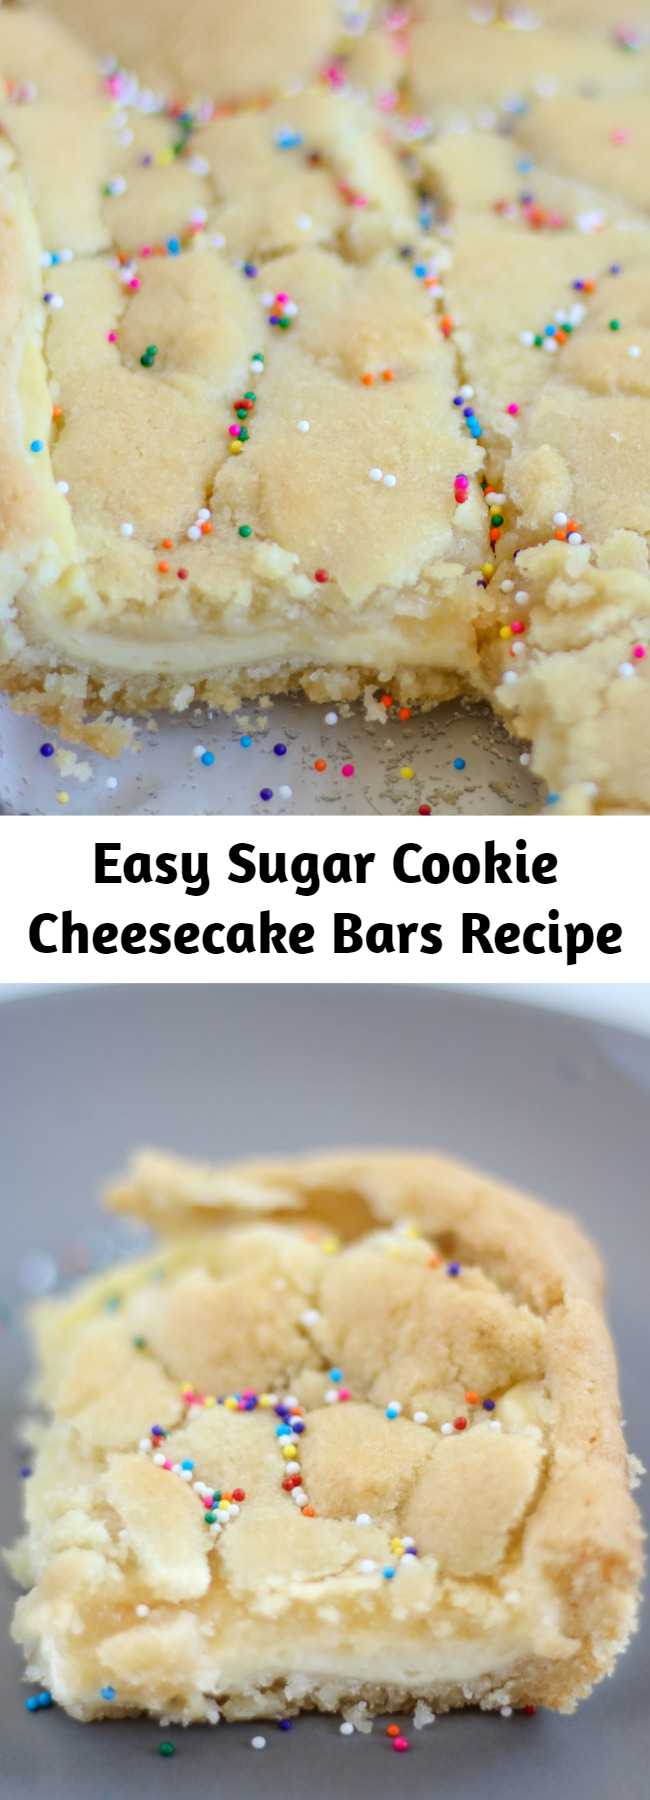 Easy Sugar Cookie Cheesecake Bars Recipe - This is the best dessert ever! If you love sugar cookies and cheesecake, then you will die for this dish! This sugar cookie cheesecake is so easy to make but tastes amazing. It is a yummy recipe to make for friends and family or just to give yourself a sweet treat. A dessert that has the best of both worlds! #sugarcookies #cookies #cheesecake #desserts #recipes